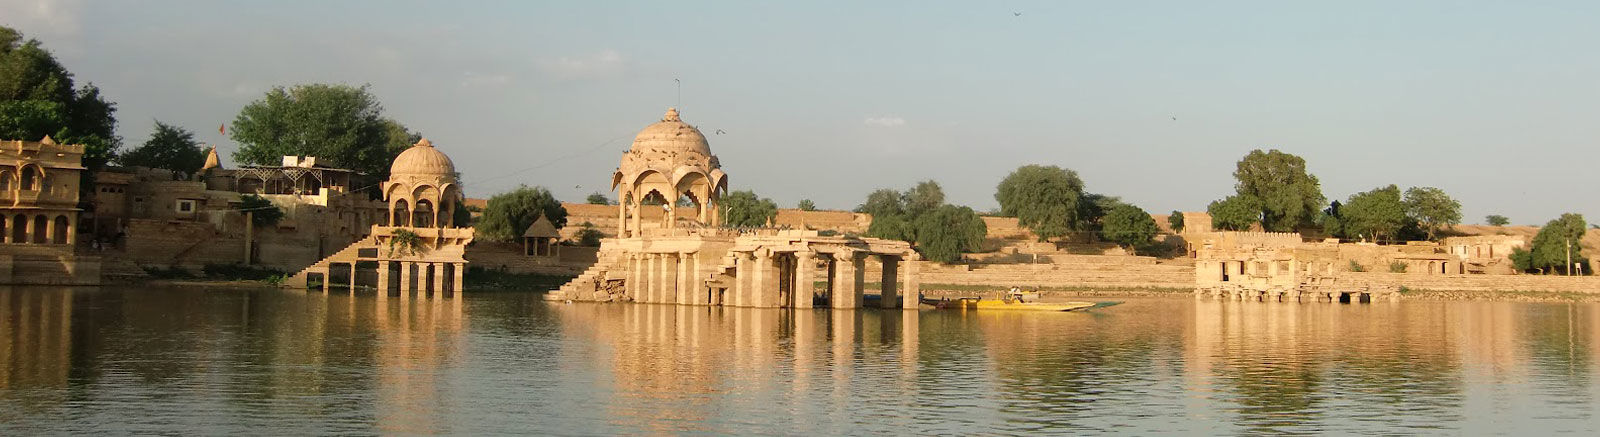 Taxi Service in Udaipur, Rajasthan | Best Taxi Service in Udaipur, Rajasthan | Udaipur Taxi Service